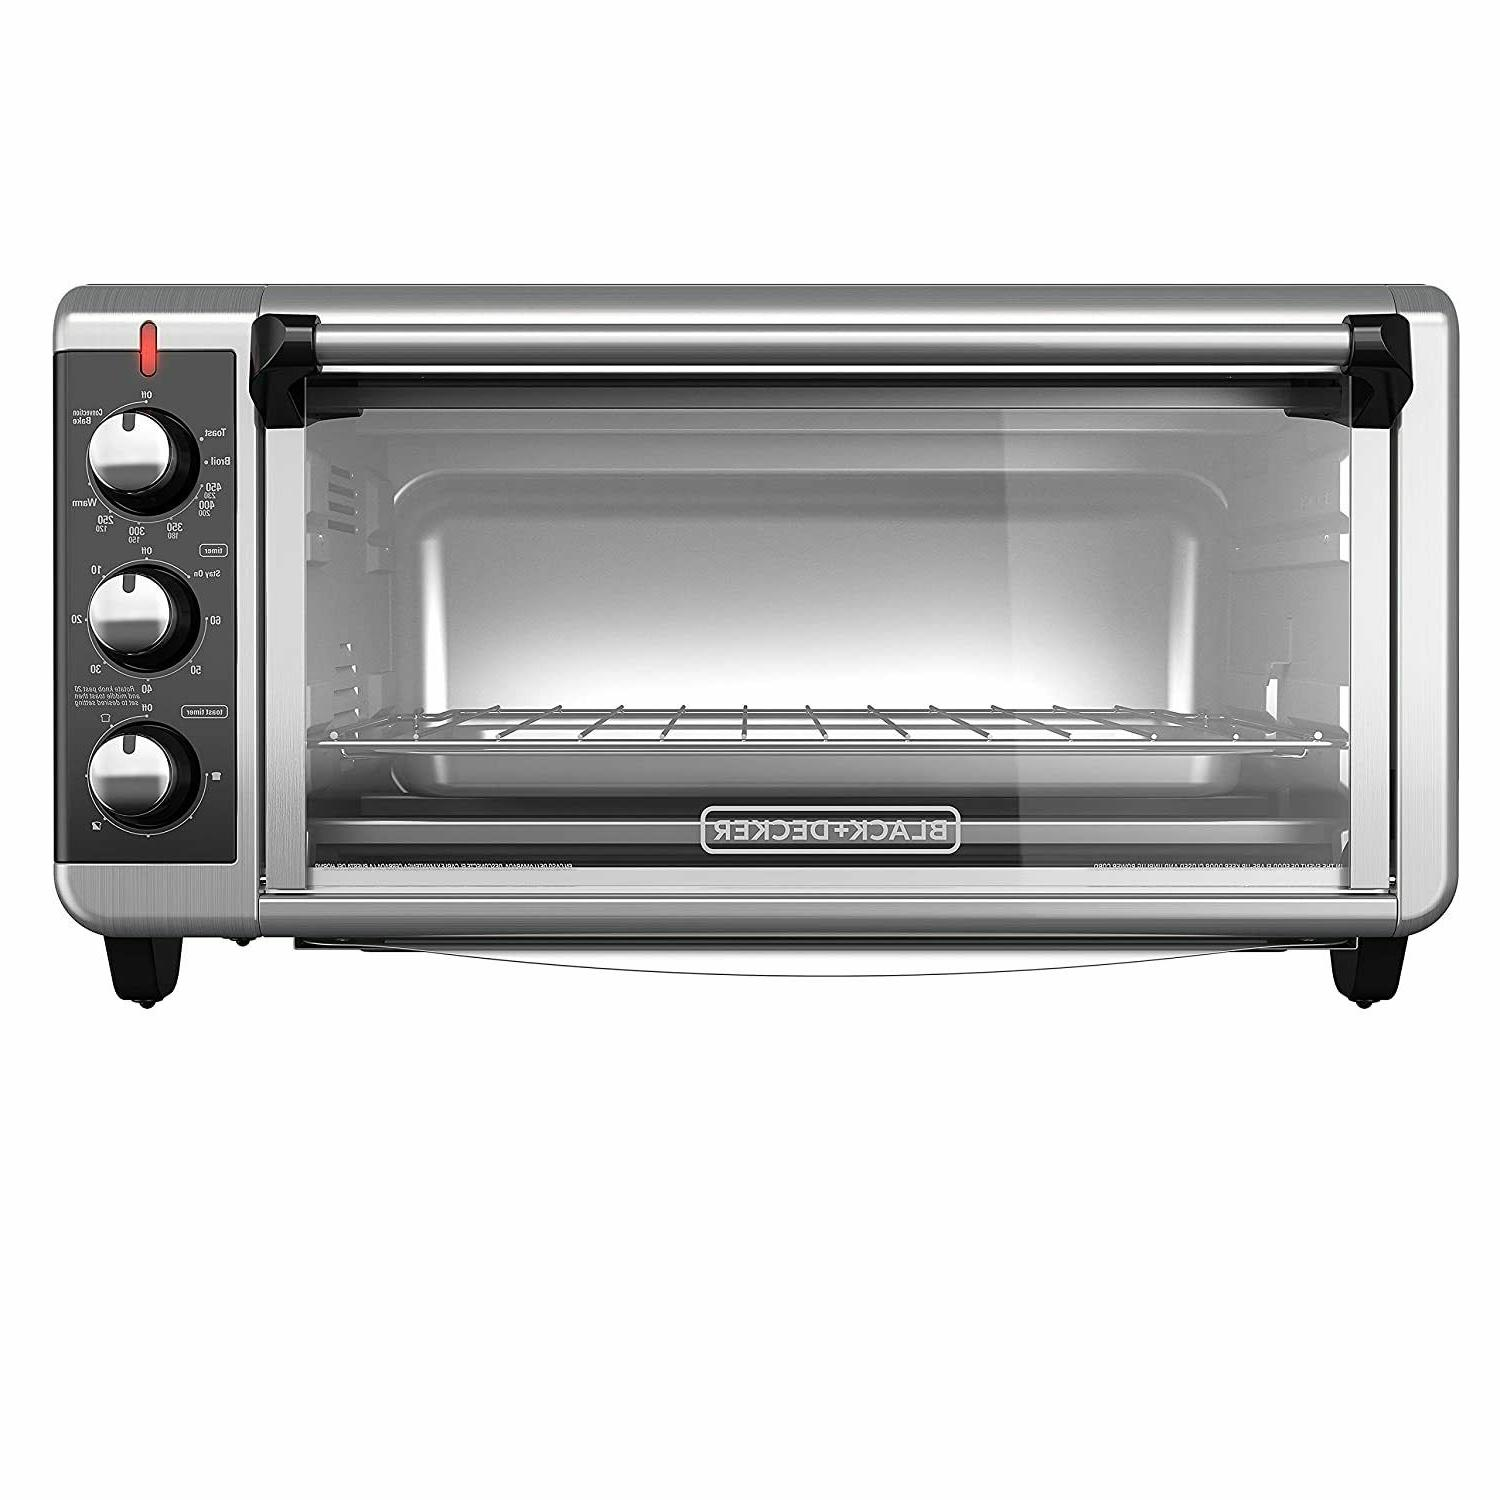 extra wide convection countertop toaster oven 8